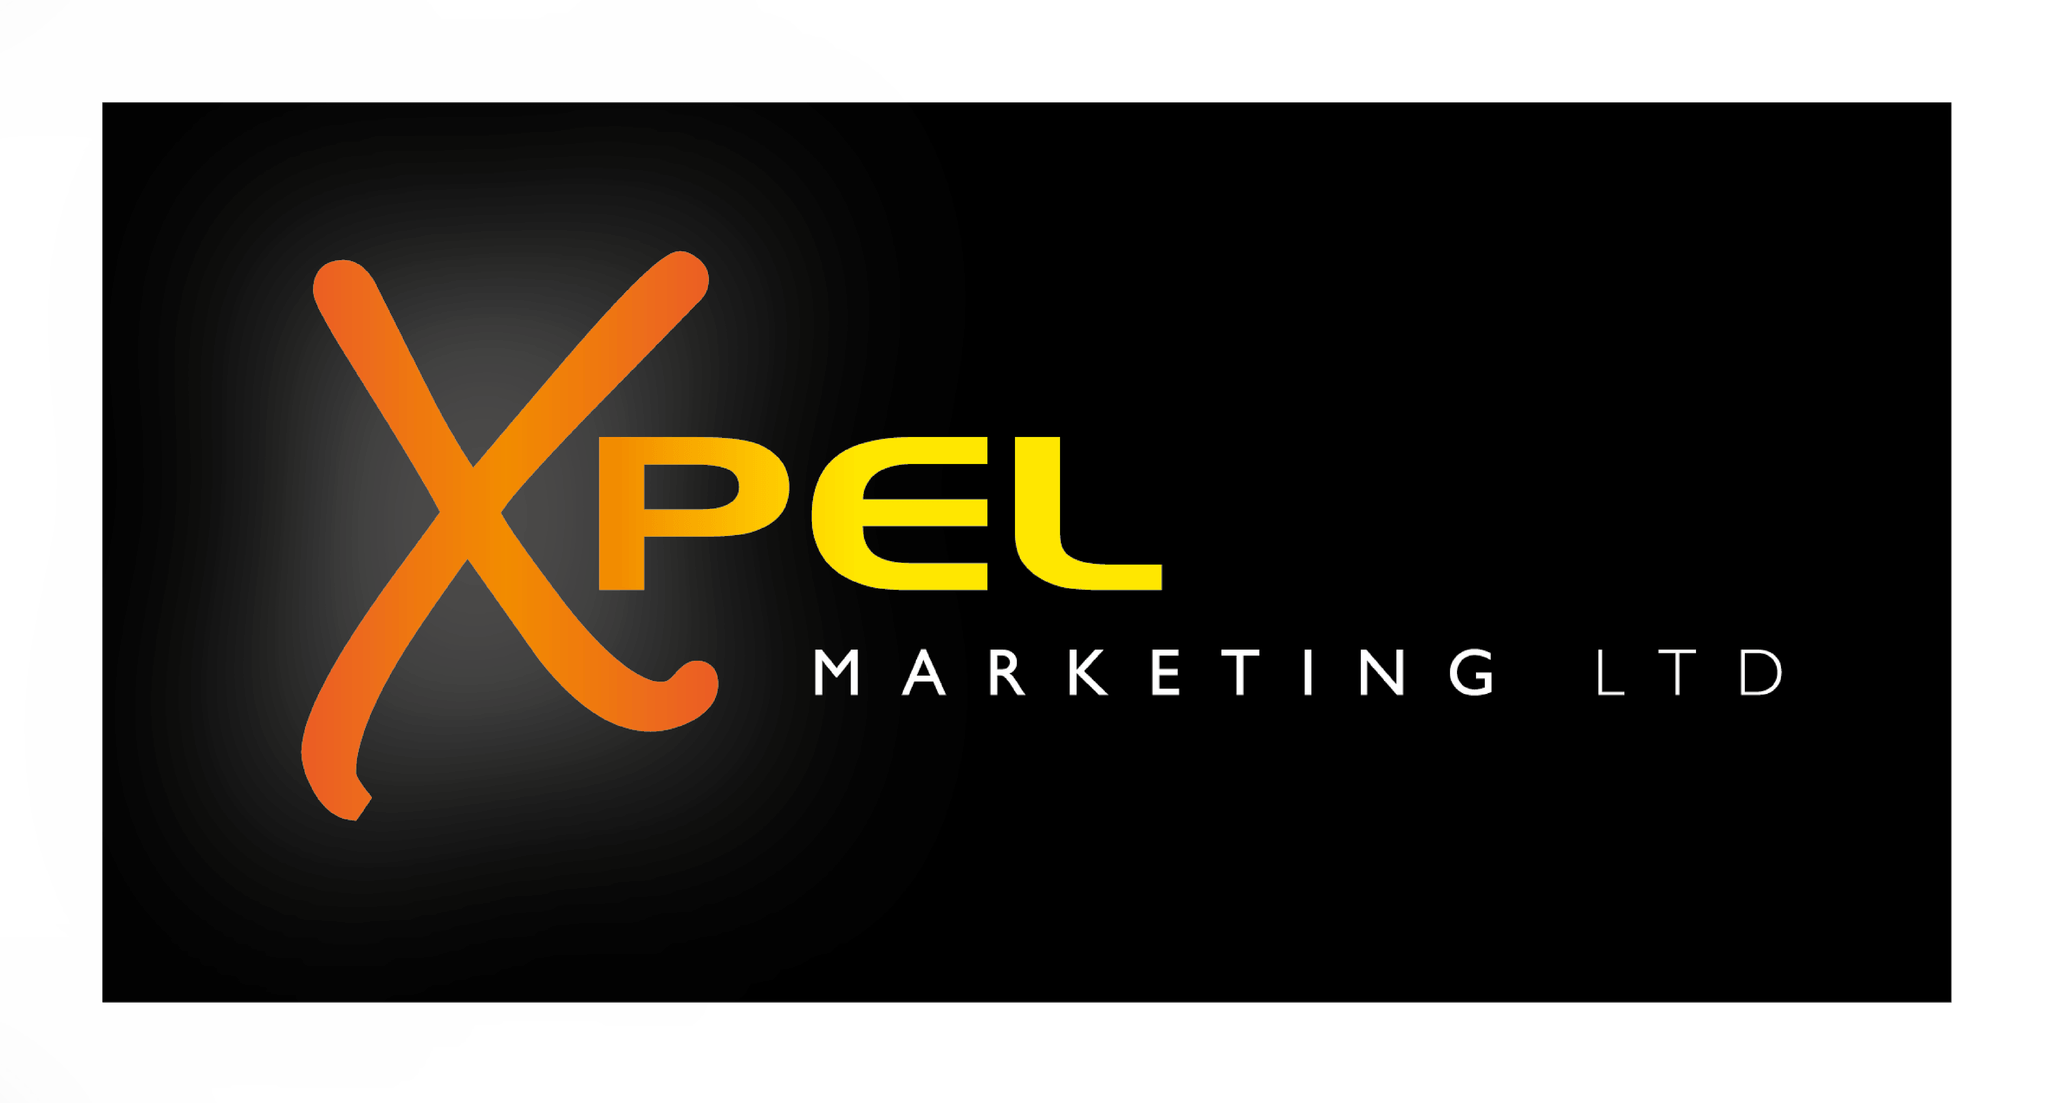 Xpel Marketing Ltd